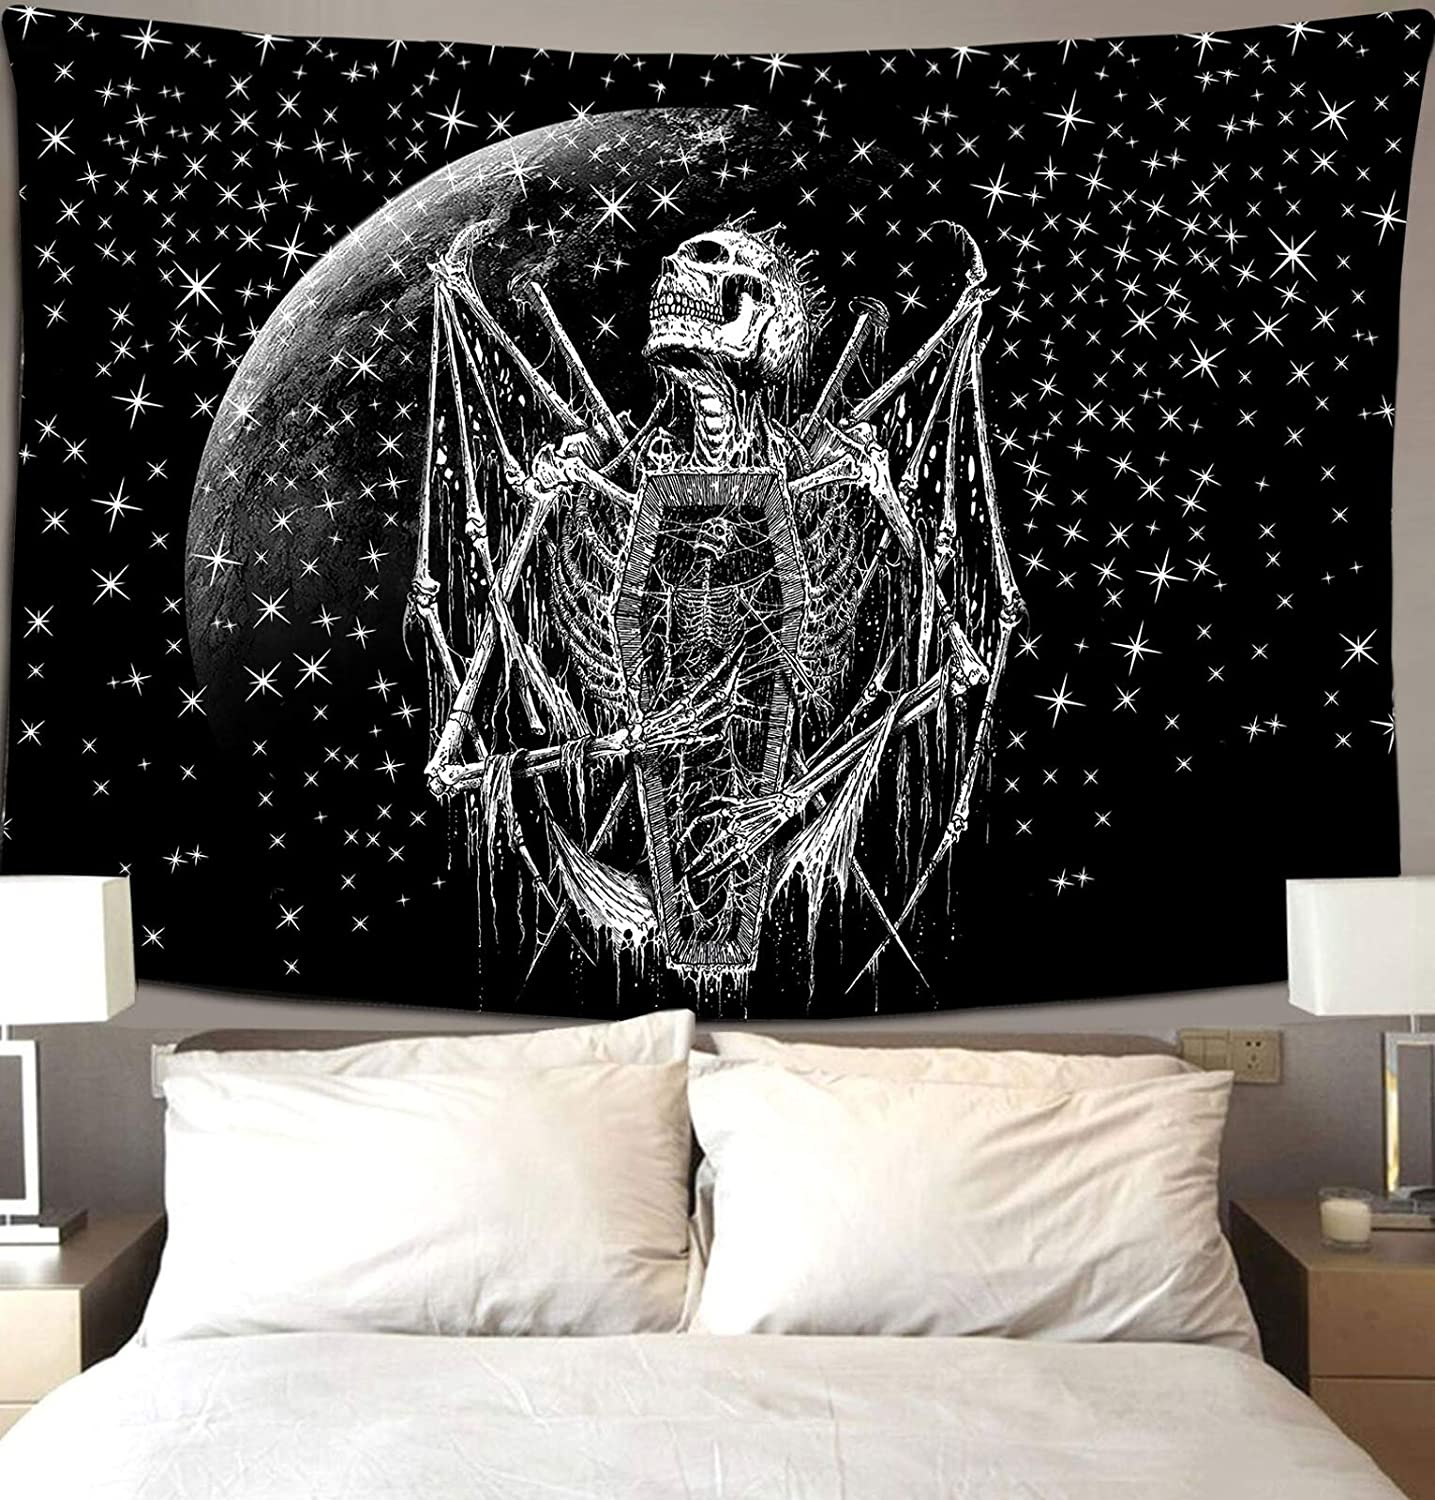 Black And White Skull Skeleton Art Under The Sun, Moon And Starry Sky Tapestry Wall Hanging As Wall Art And Home Decor For Bedroom, Living Room, Dorm Decor Tapestry 60*51inch